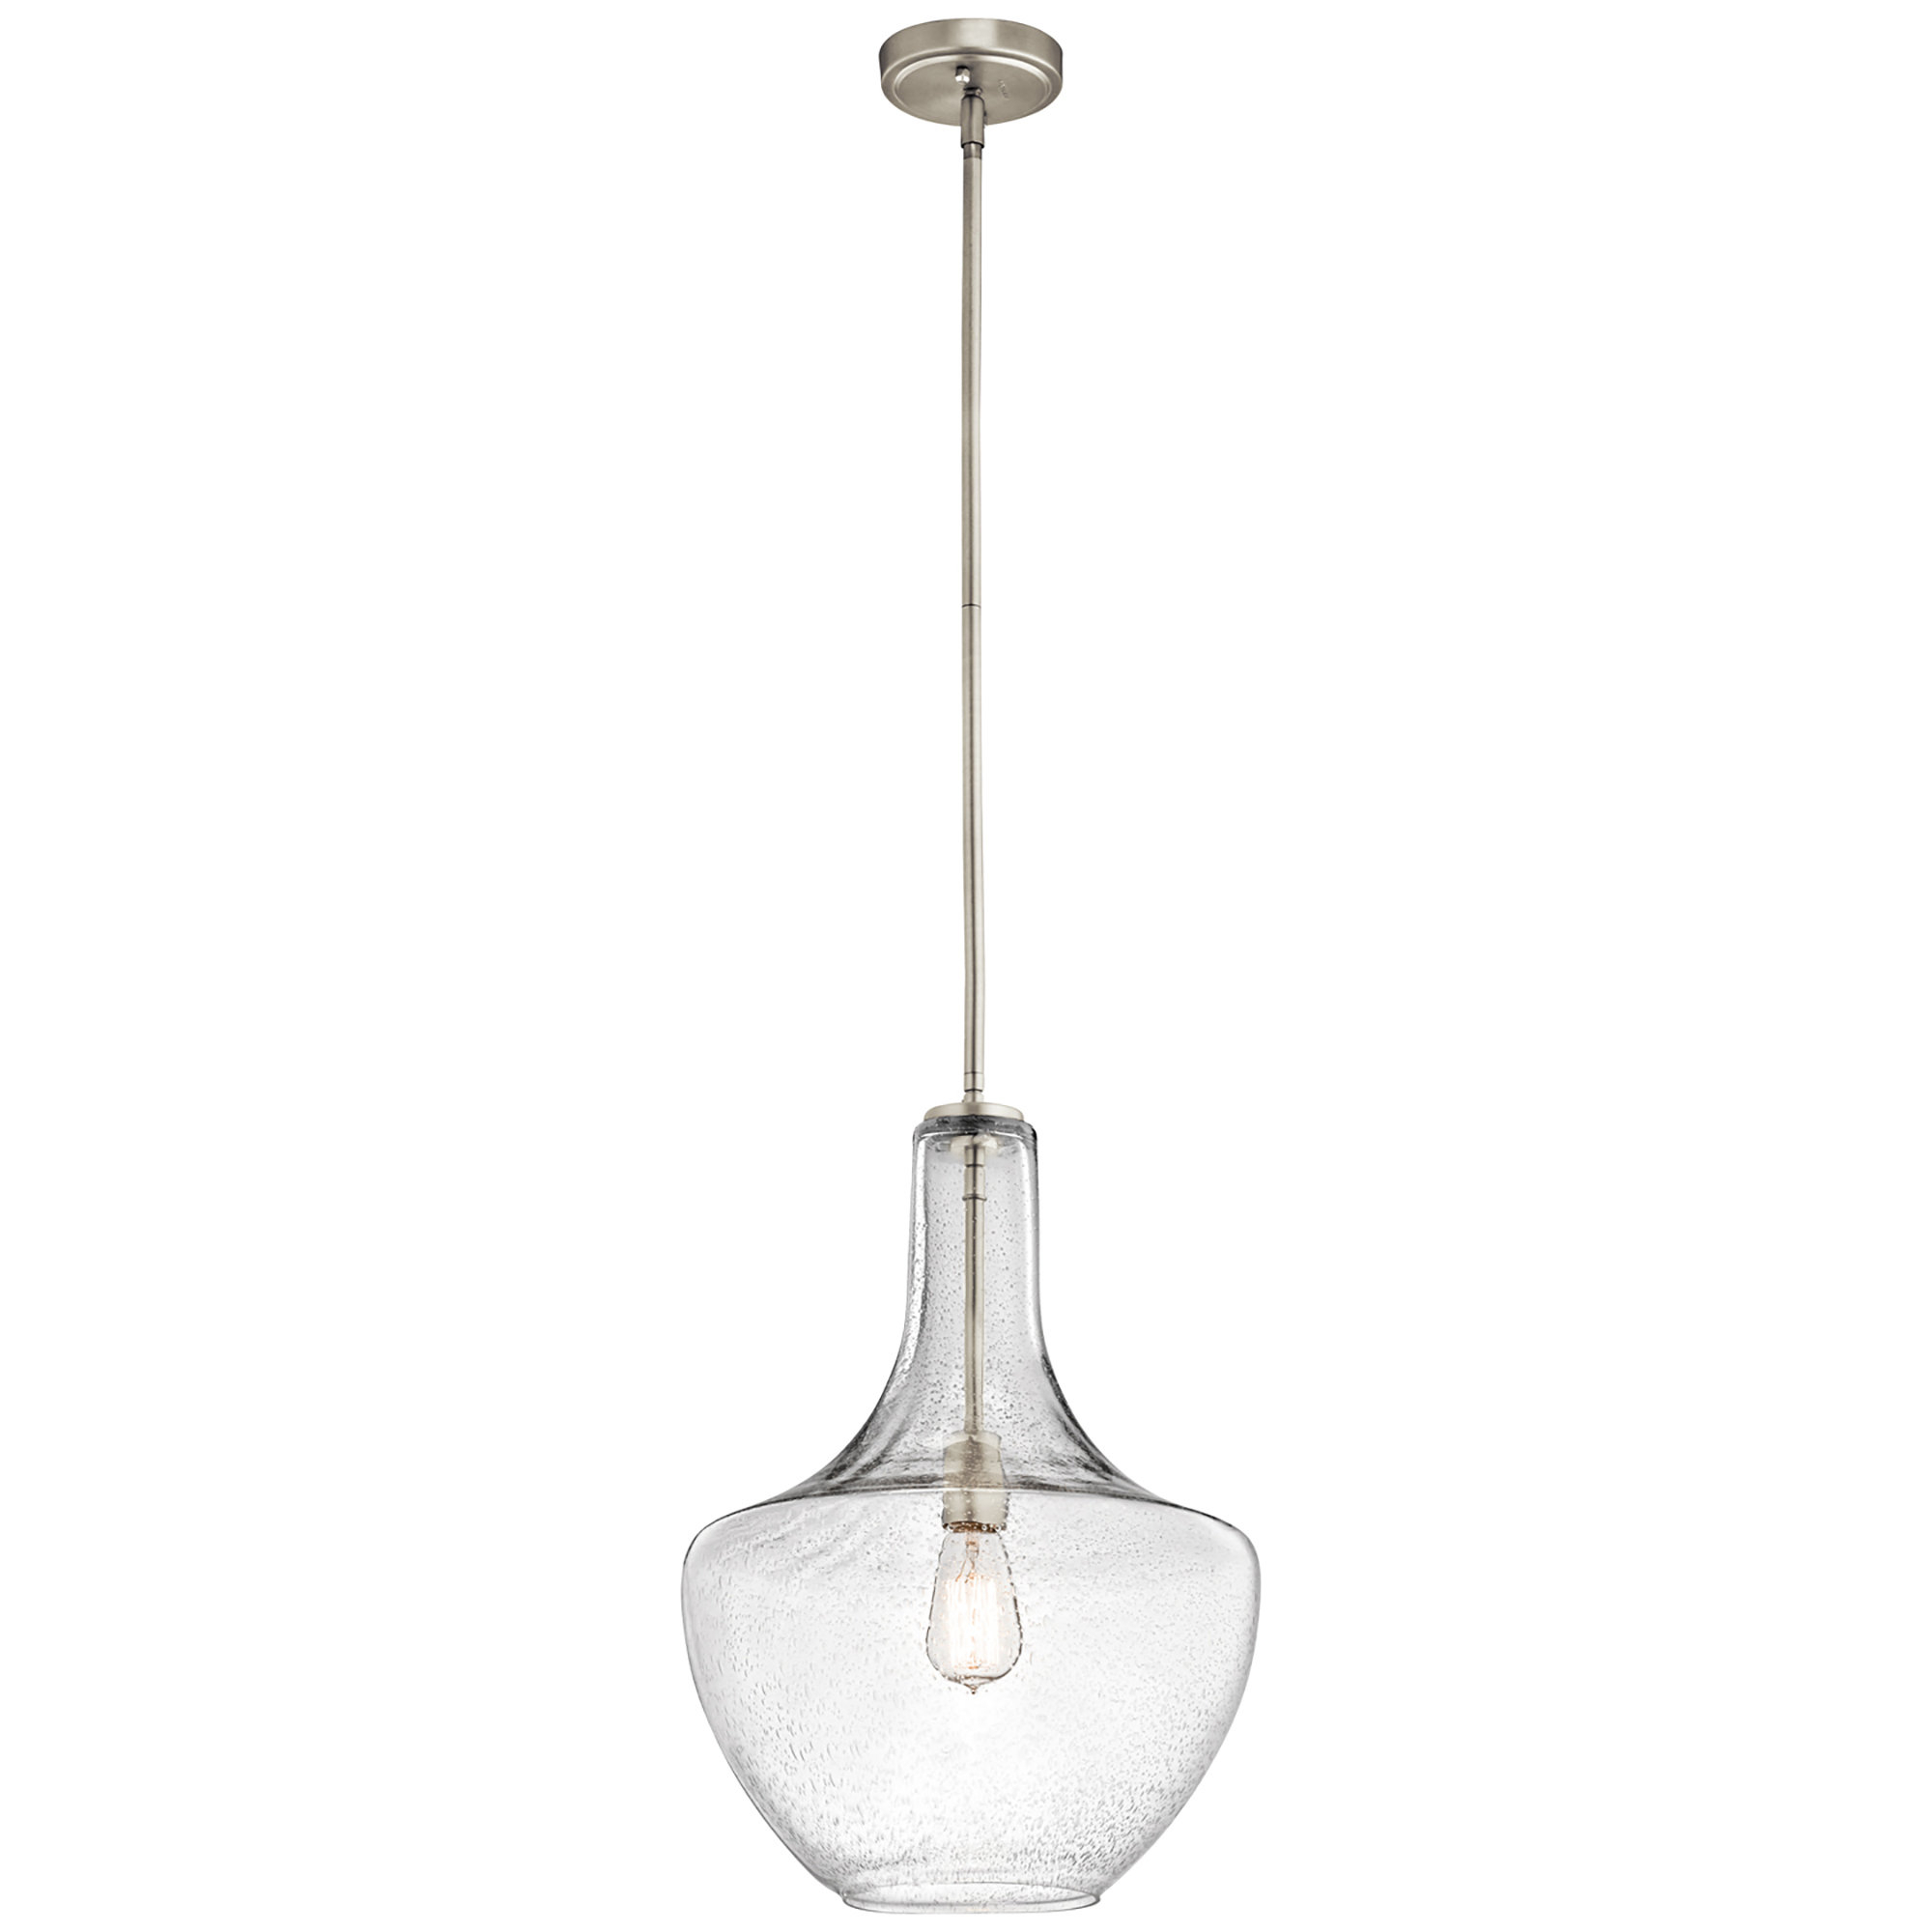 Birch Lane™ Heritage Goffredo 1 Light Single Teardrop Pendant Intended For Neal 1 Light Single Teardrop Pendants (View 22 of 30)